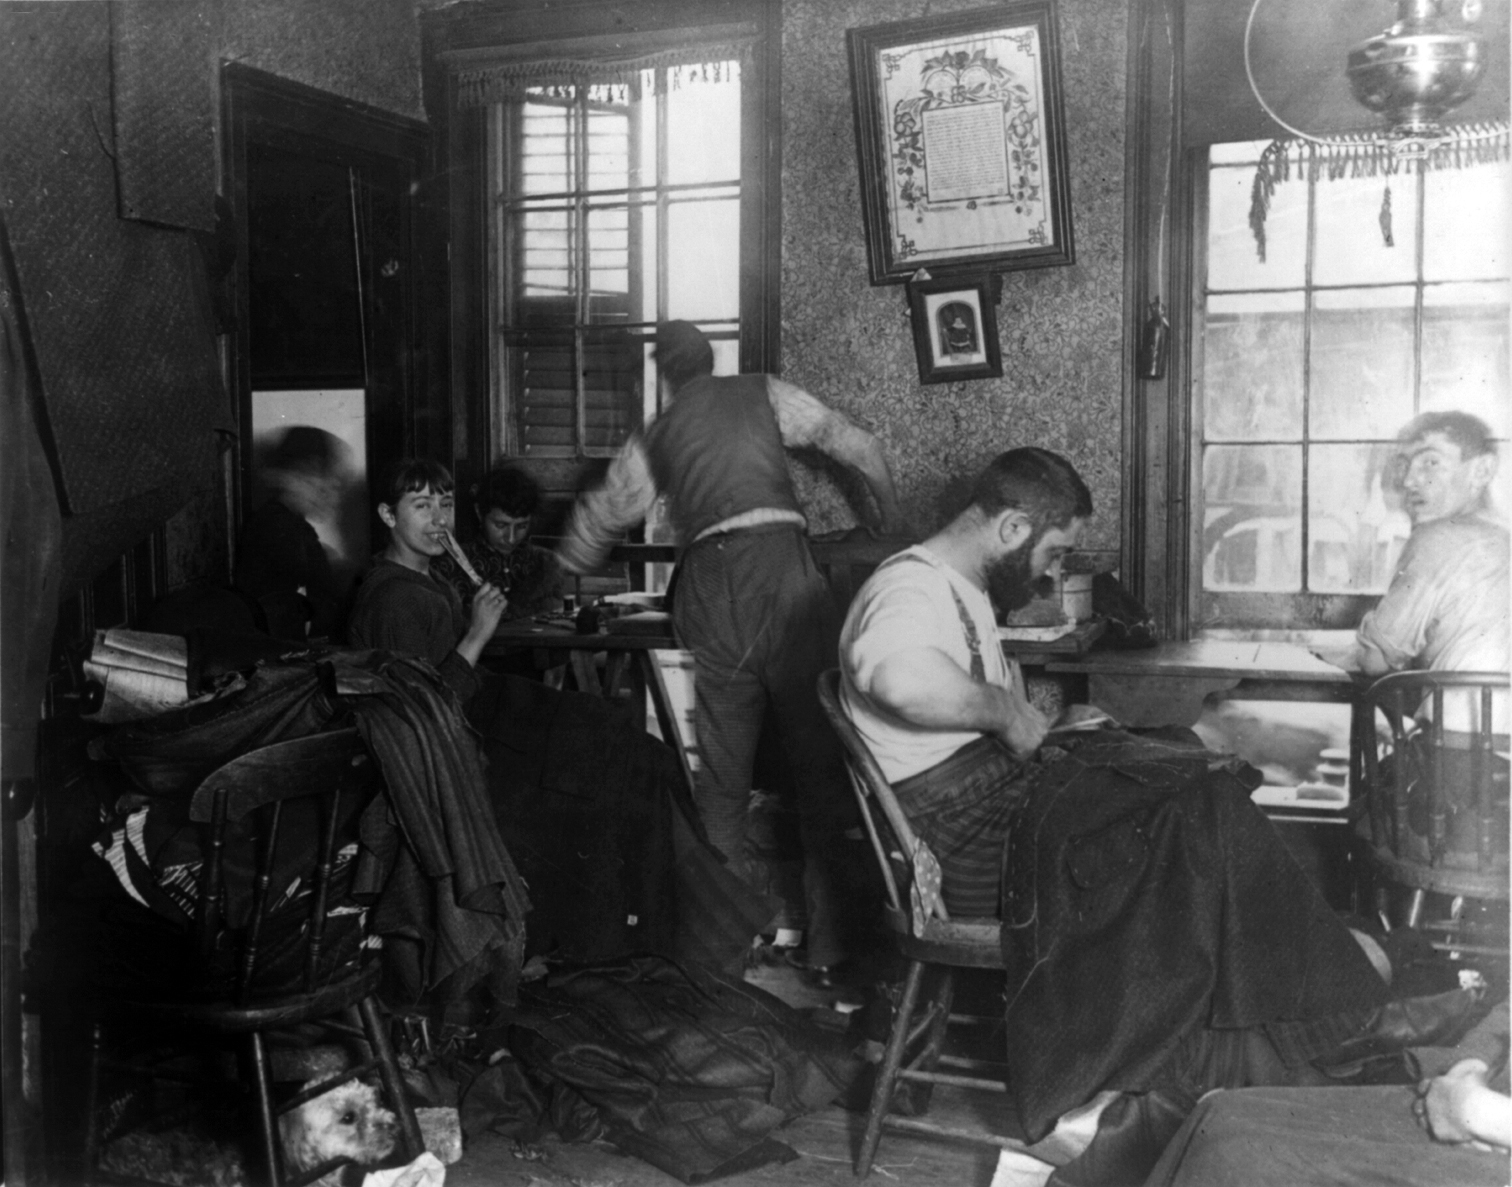 Description Sweatshop in Ludlow Street Tenement  New York cph 3a24271    Sweatshop Living Conditions